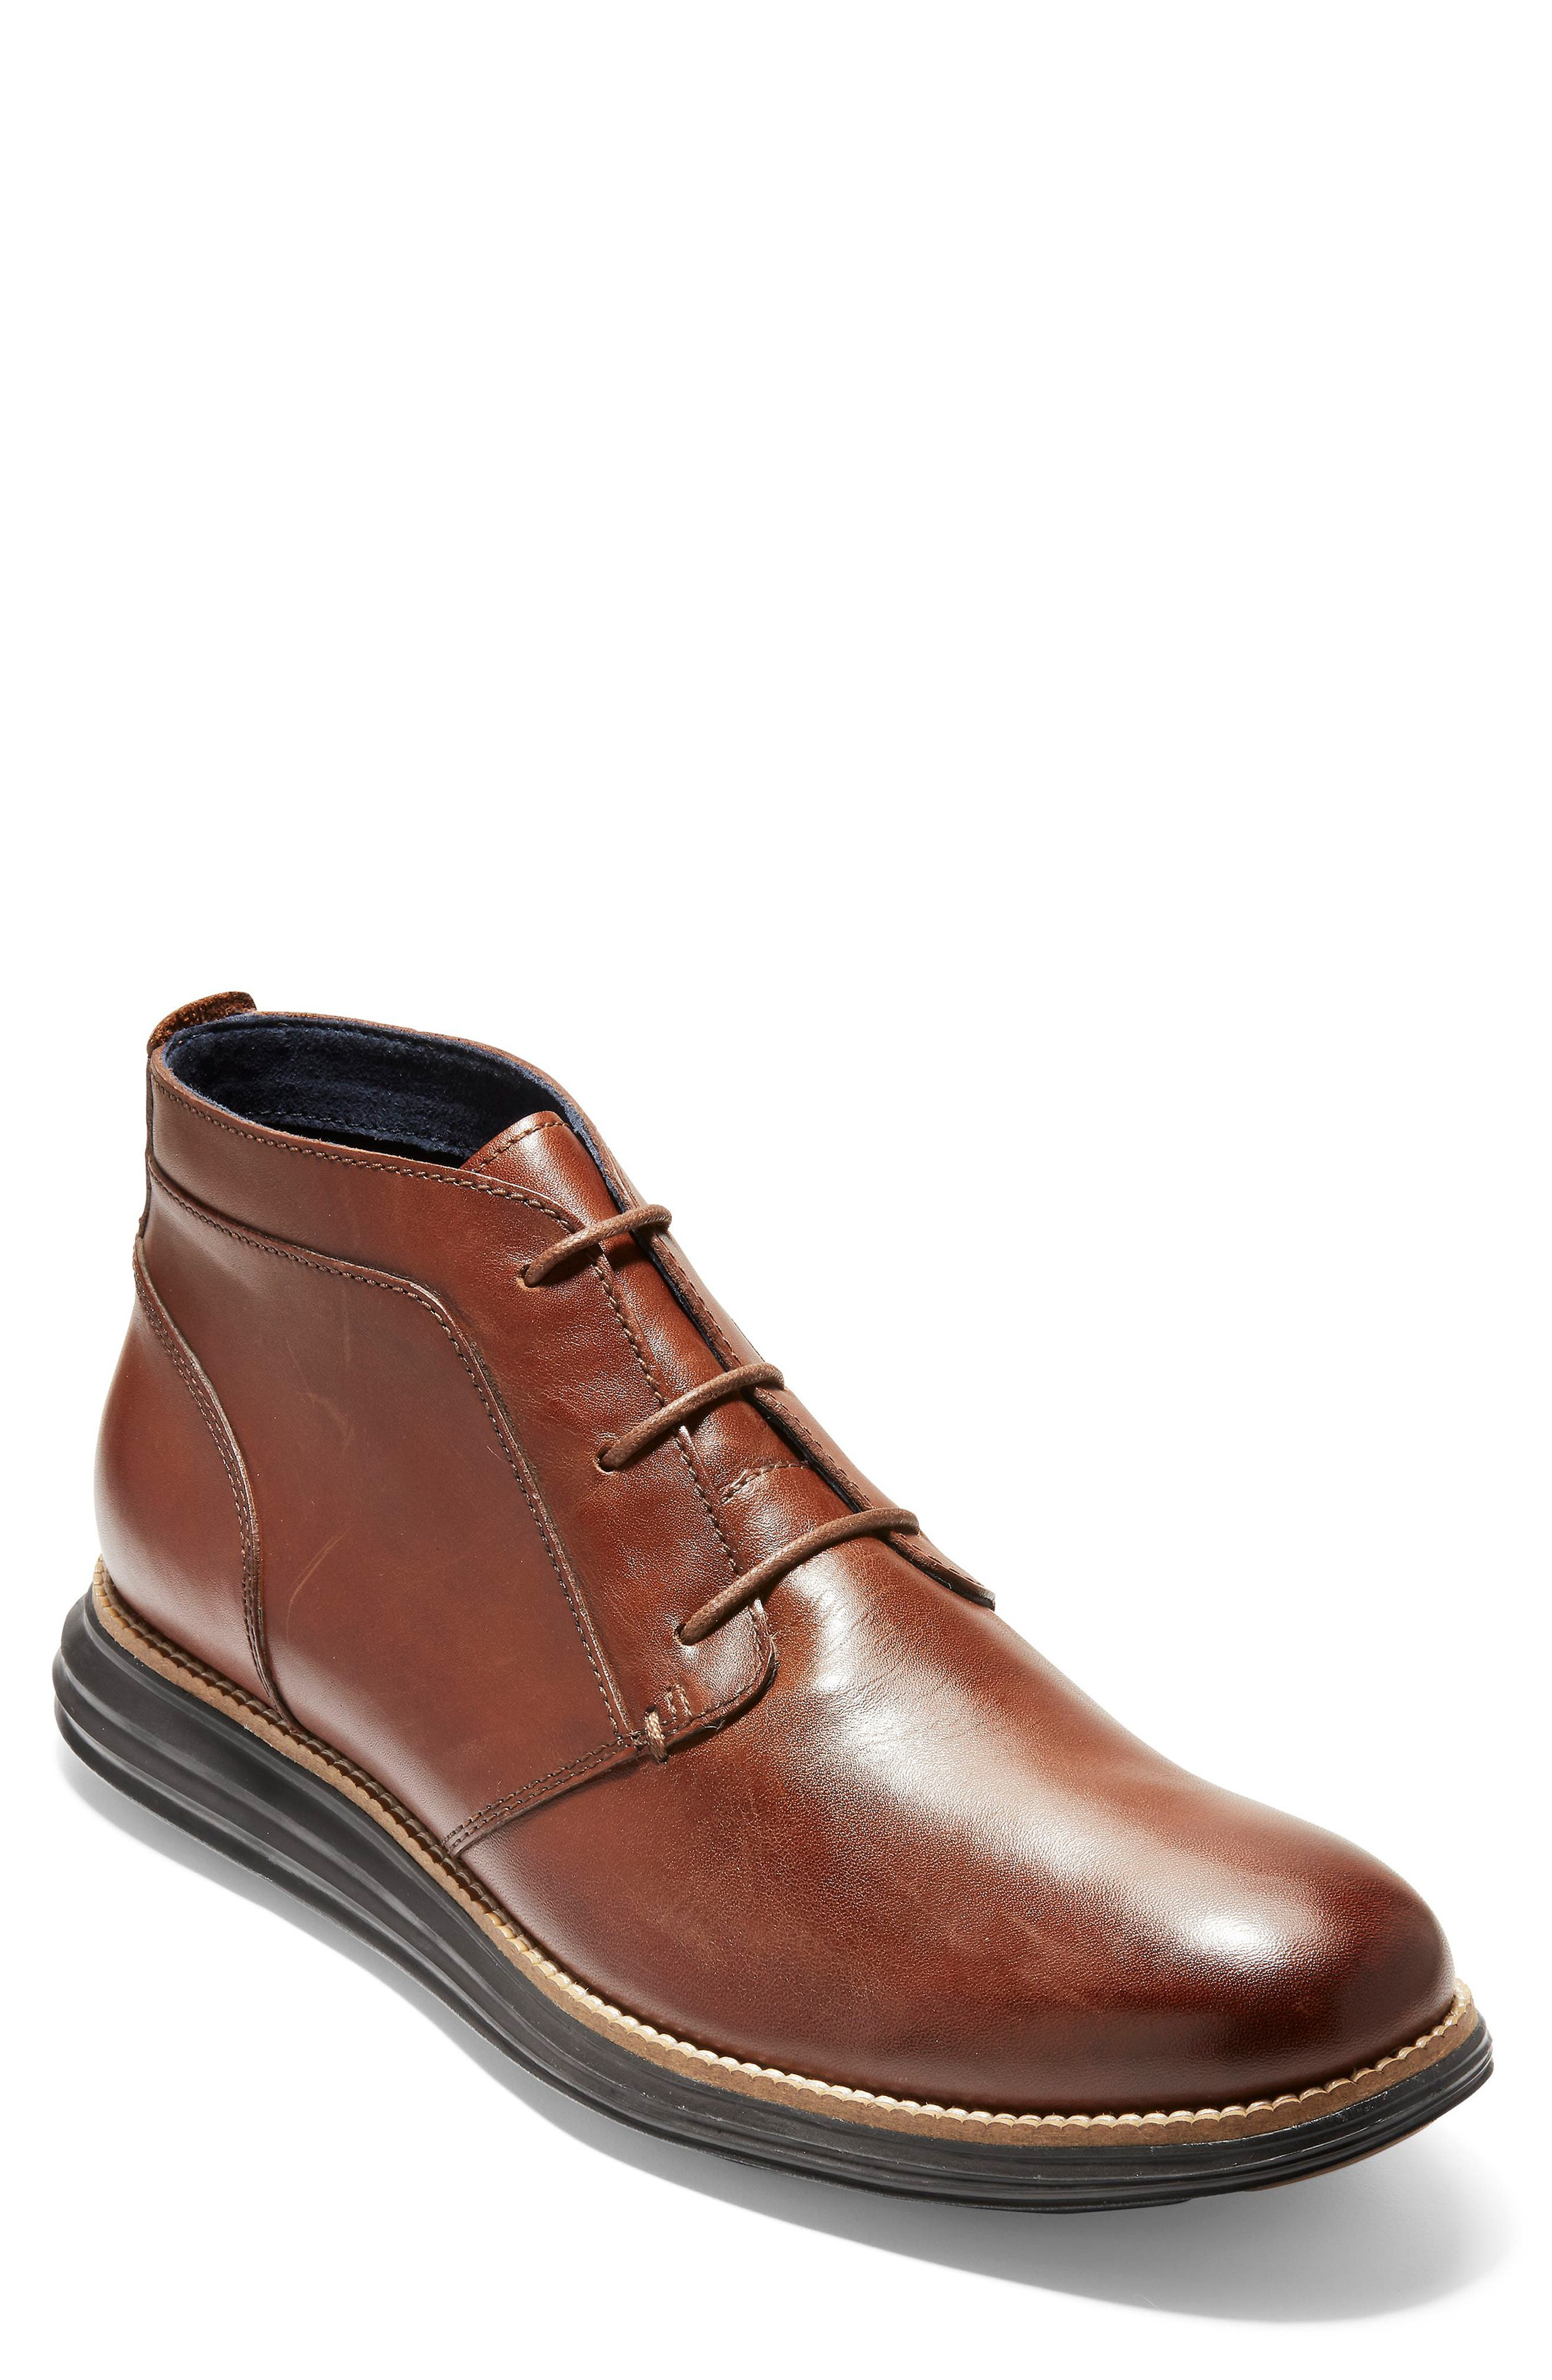 Cole Haan Original Grand Chukka Boot, Brown